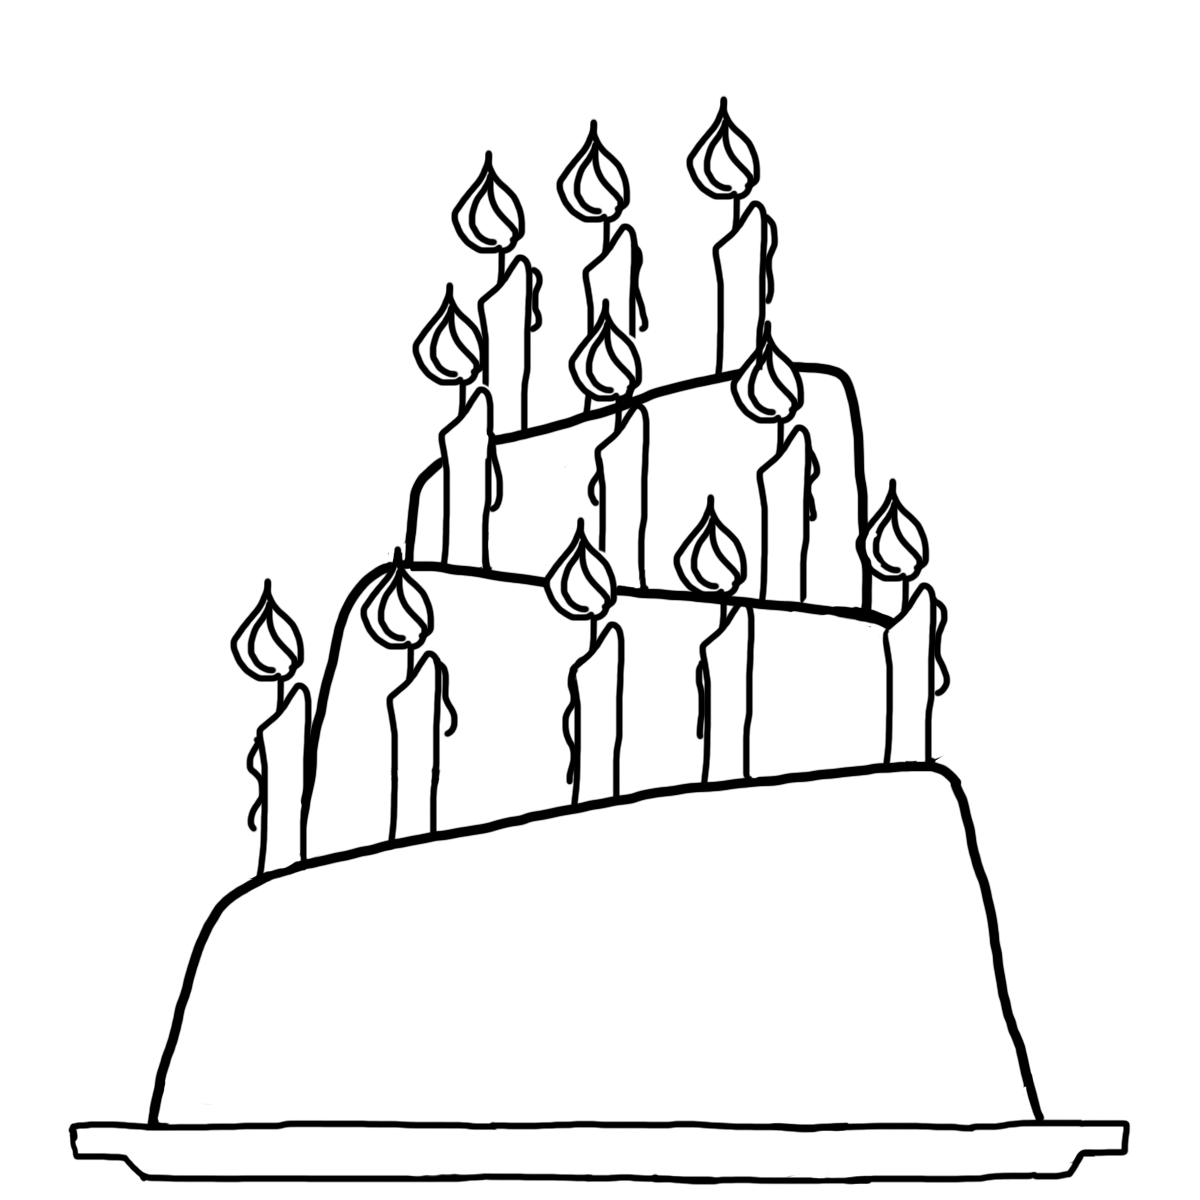 hight resolution of 1200x1200 drawn birthday slice